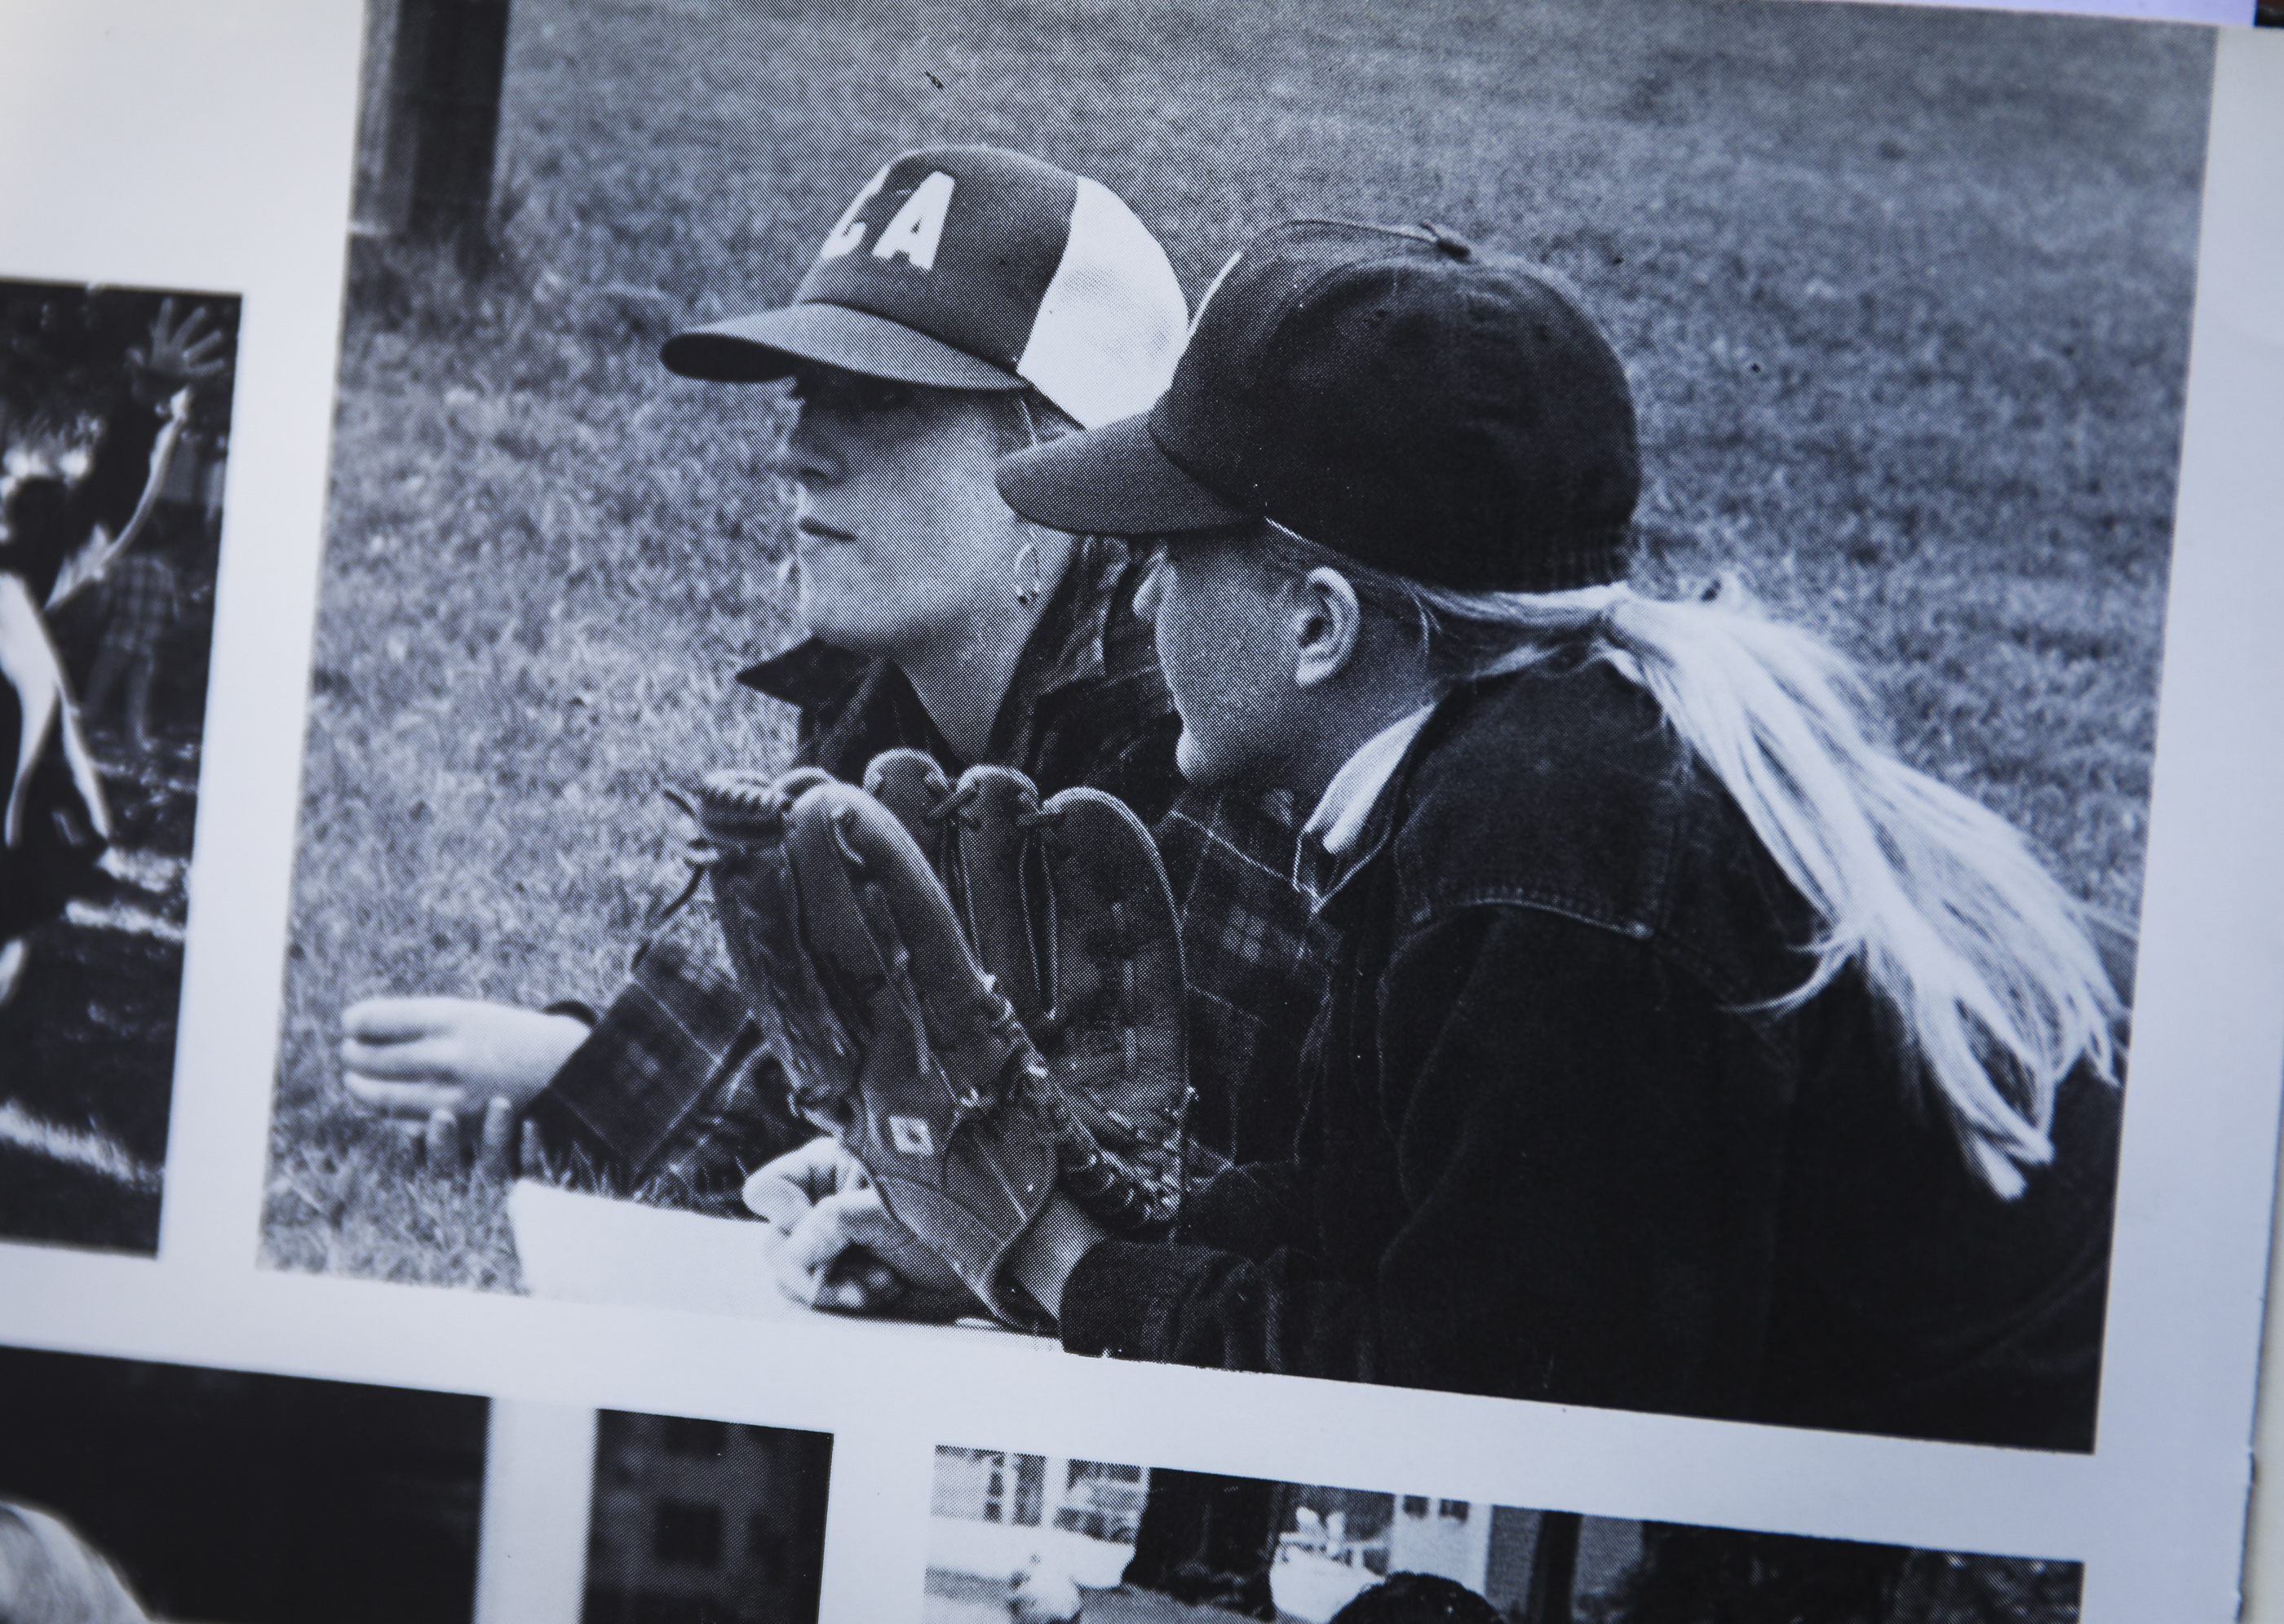 Estey Ticknor (right) and Lyza Morss (left) are shown in Ticknor's high school yearbook. Ticknor confided in Morss about her relationship with Gray after college. Morss also played in the Assabet Valley program.